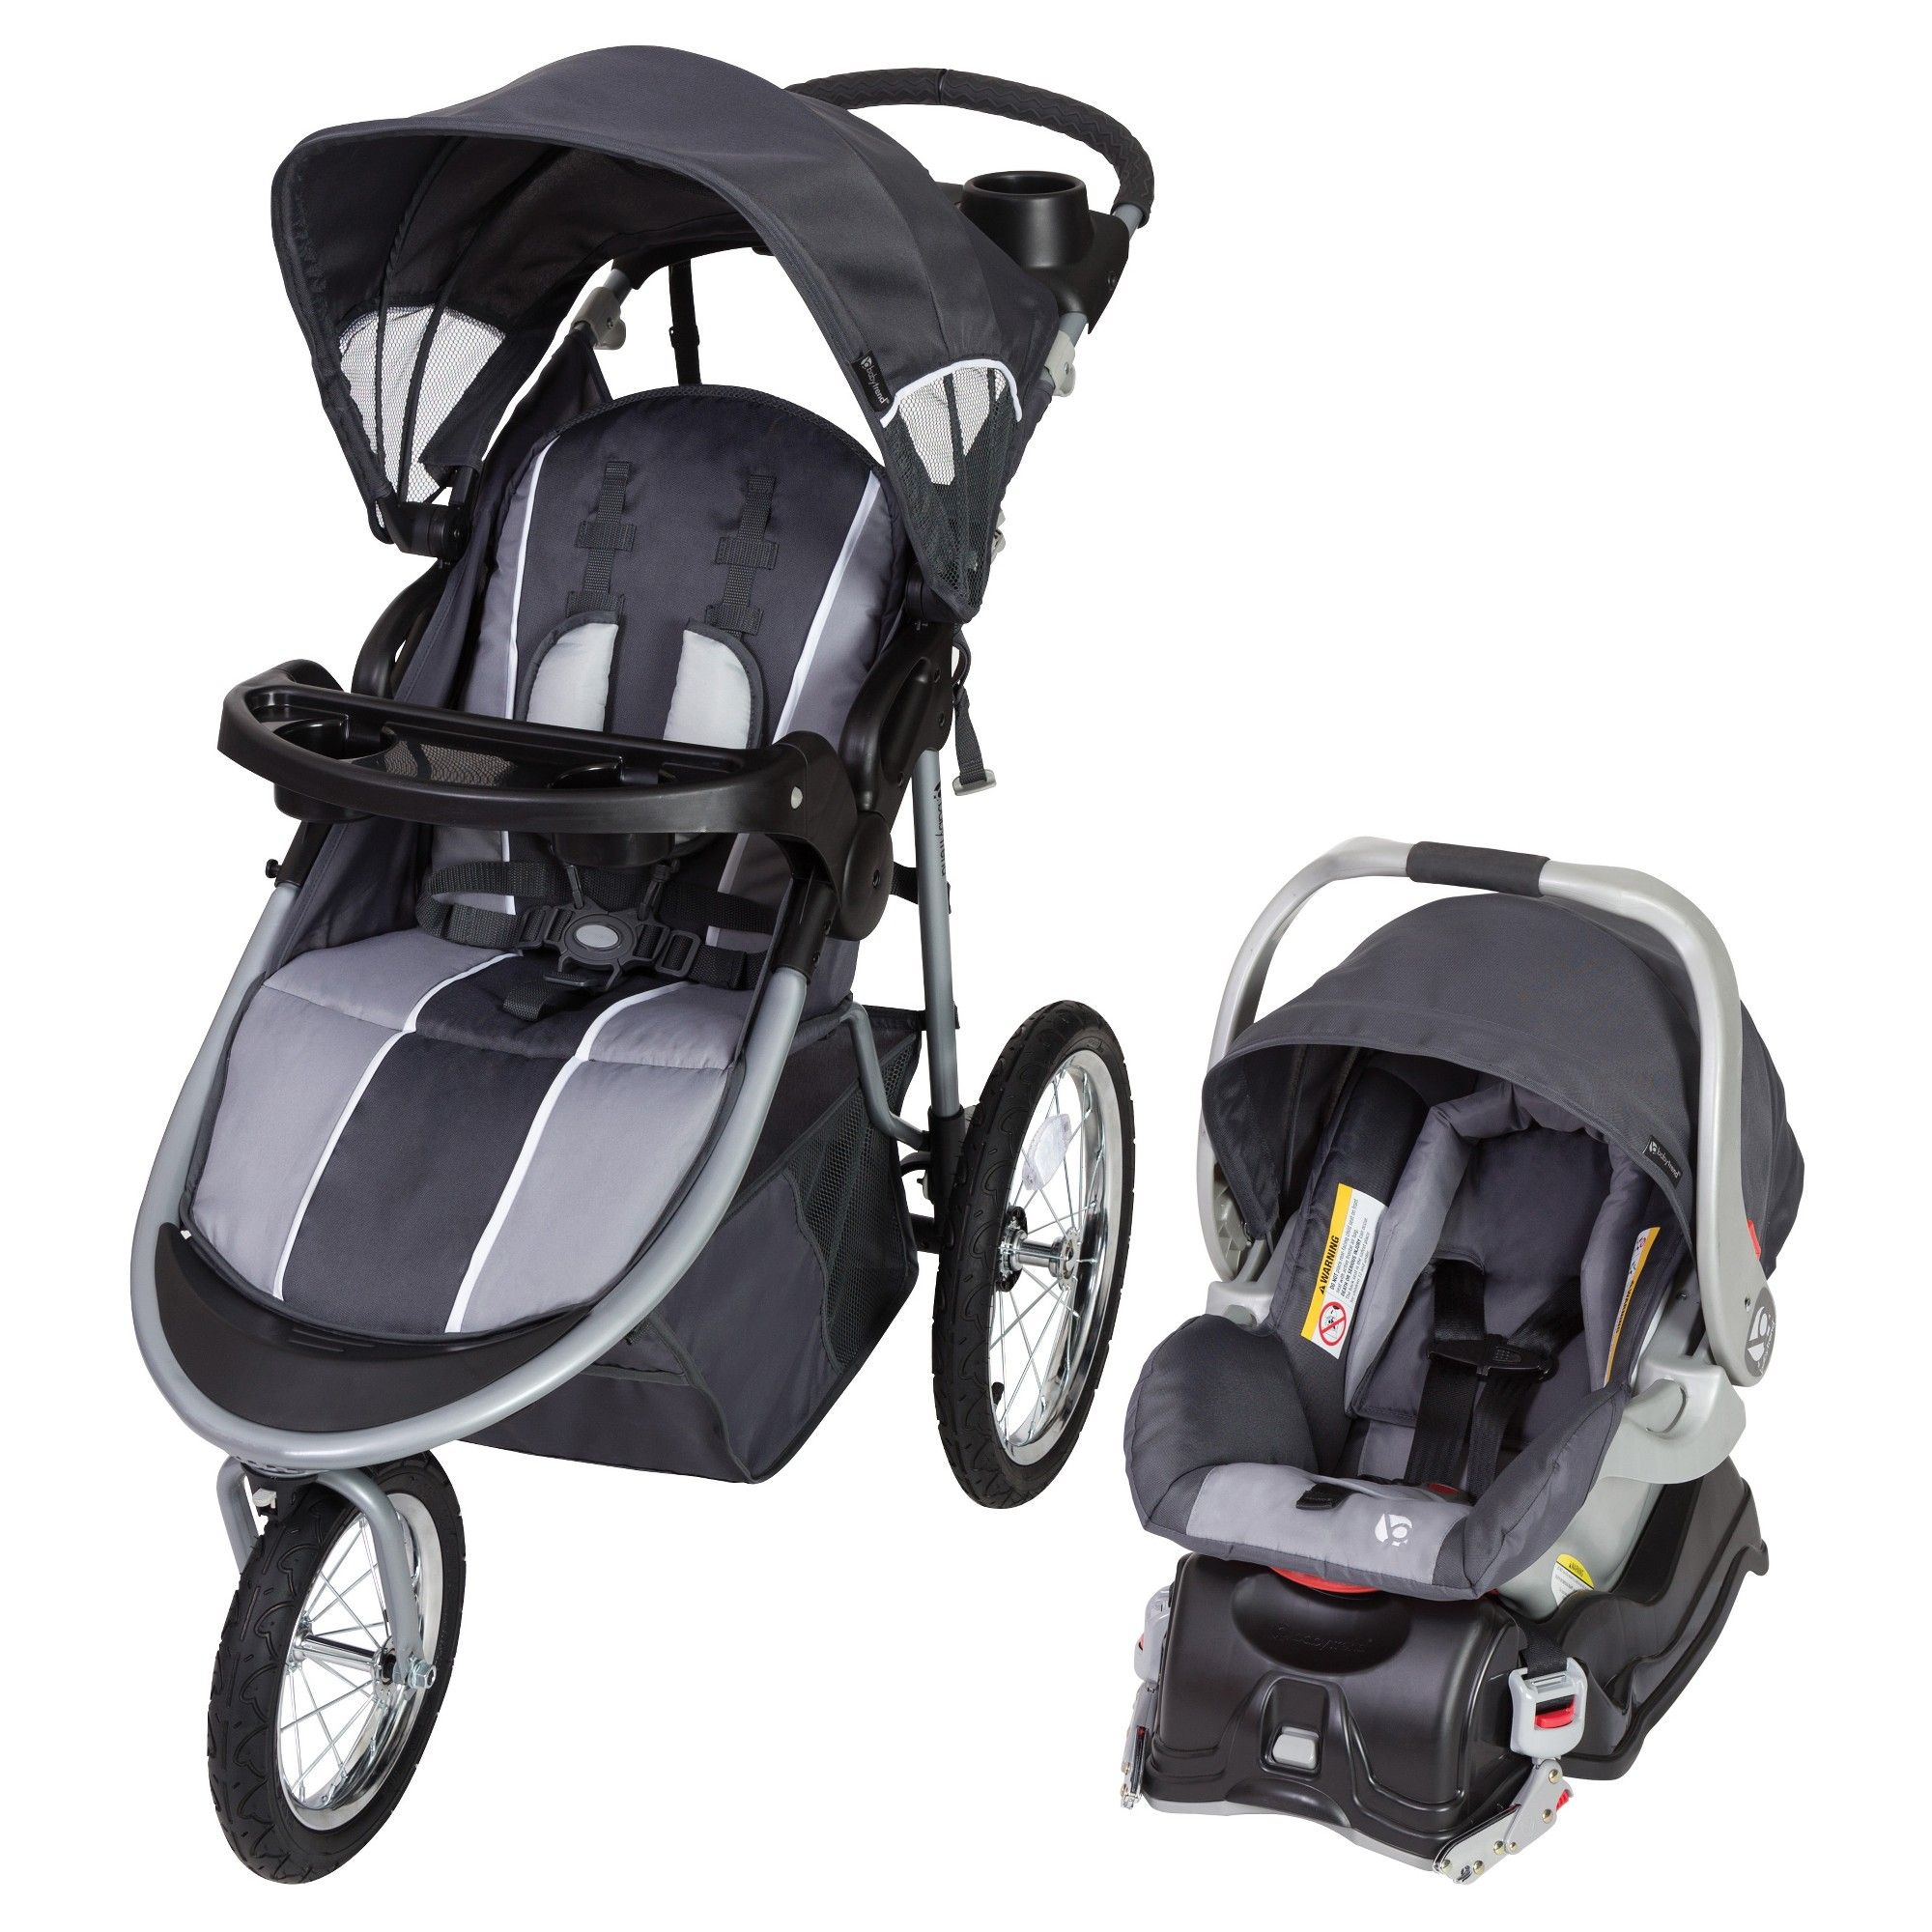 Baby Trend Jogger Travel System Gray Baby trend, Travel